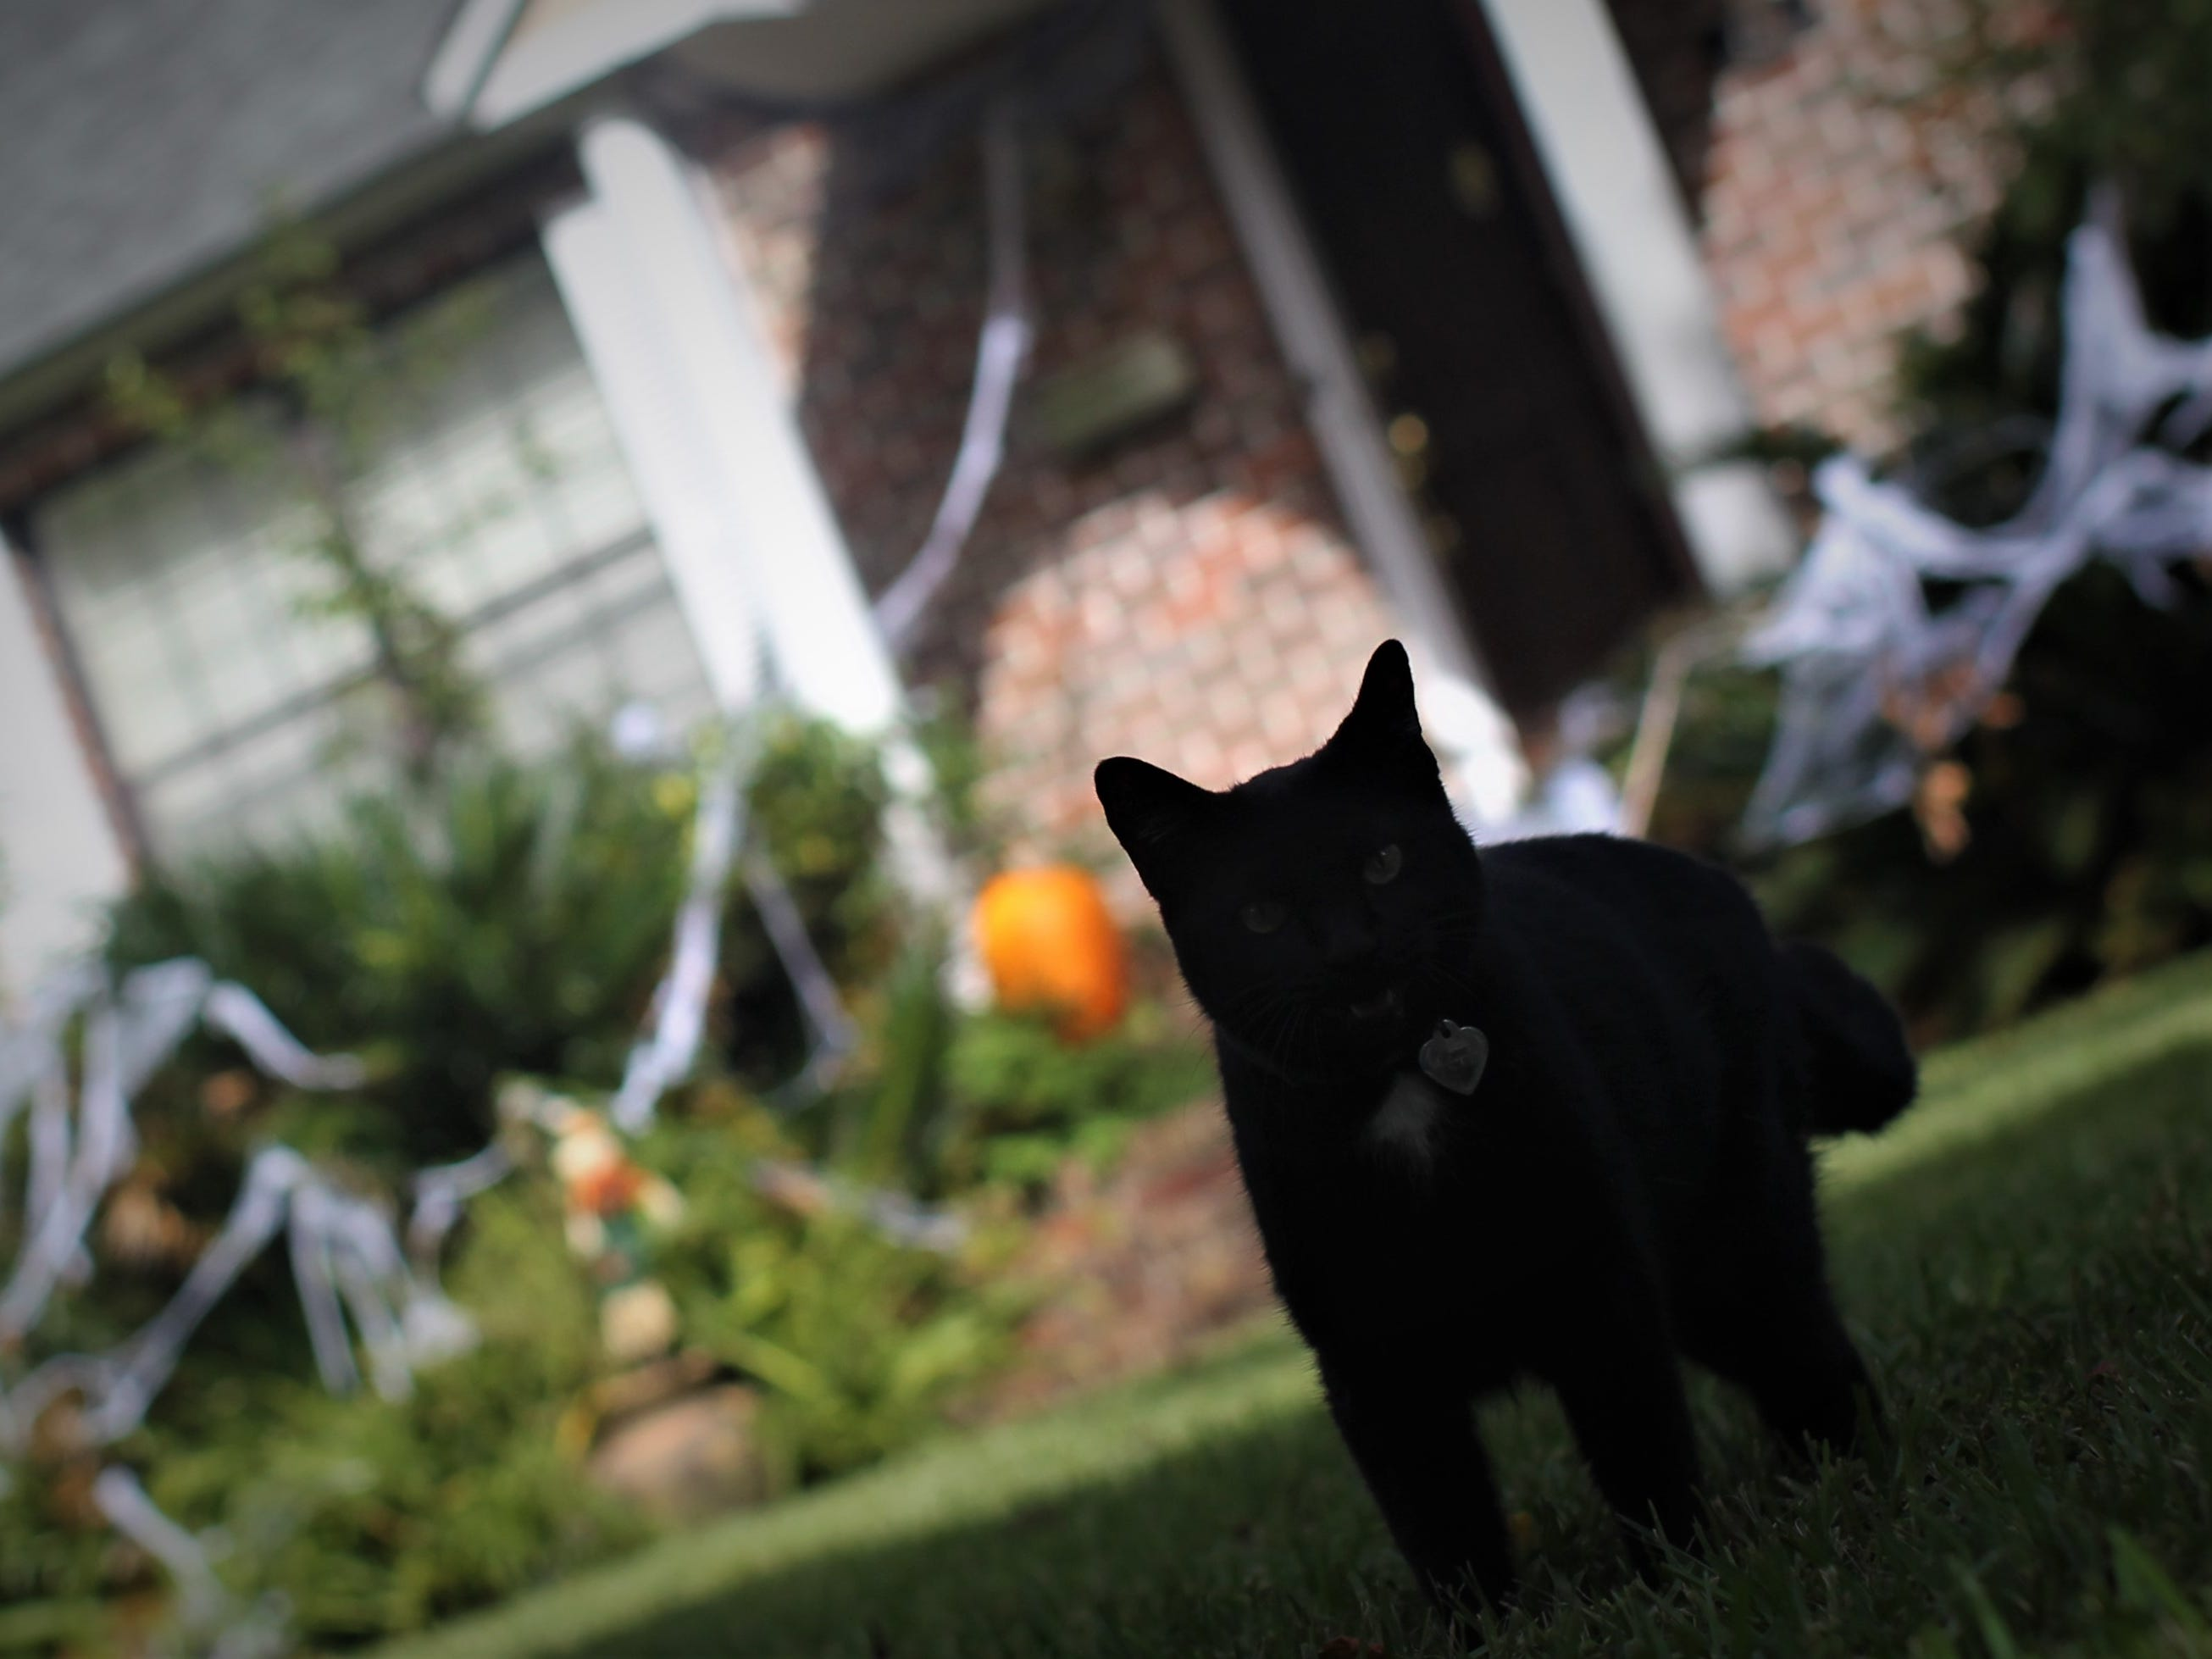 A black cat ventures out in the front yard of a Halloween-decorated house along Igleside Avenue. Tallahassee's Midtown neighborhood near Lafayette Park draws thousands of children for trick-or-treating.